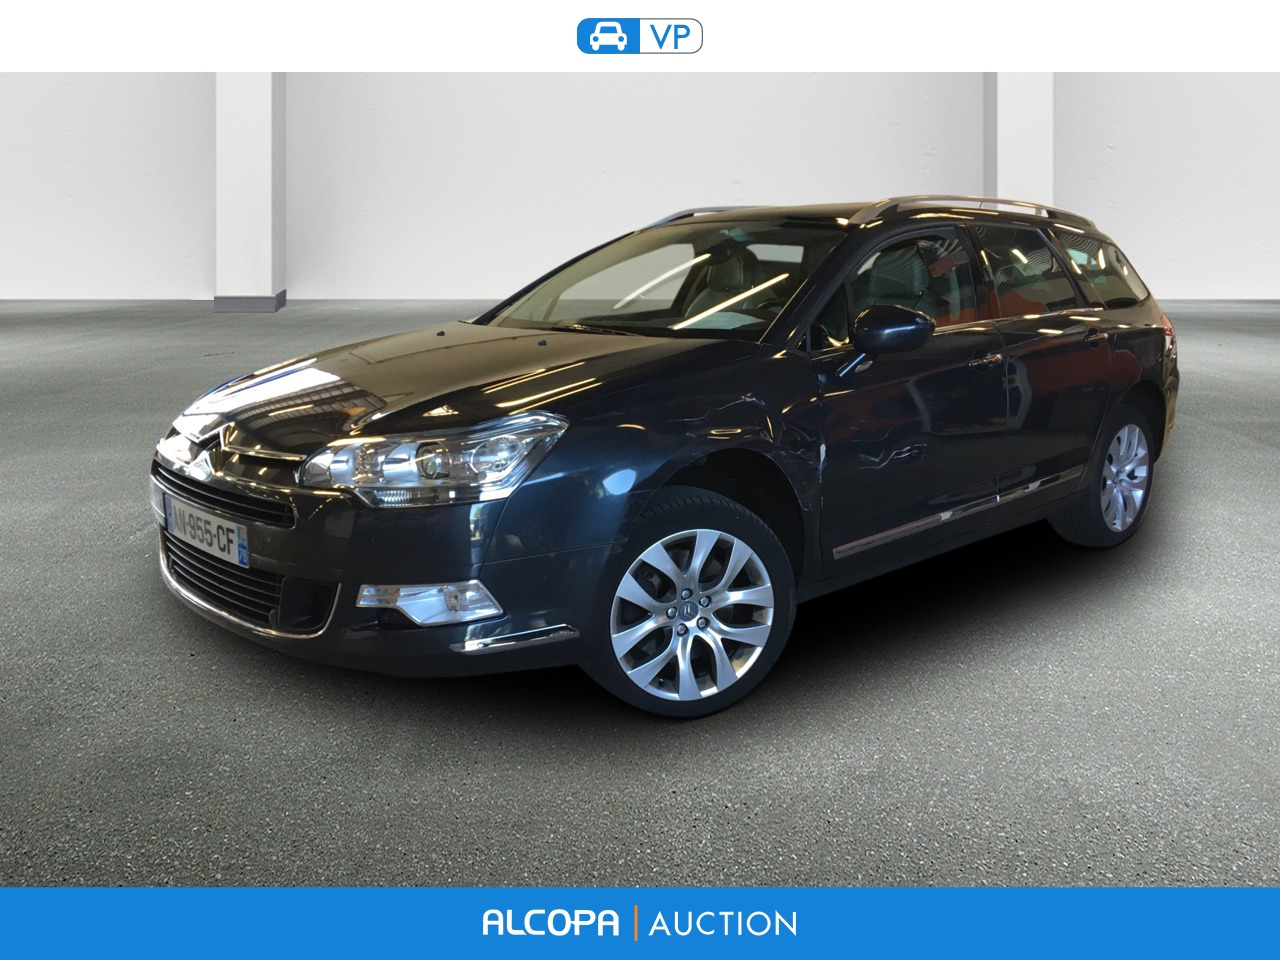 citroen c5 tourer c5 tourer v6 hdi 240 fap exclusive a alcopa auction. Black Bedroom Furniture Sets. Home Design Ideas